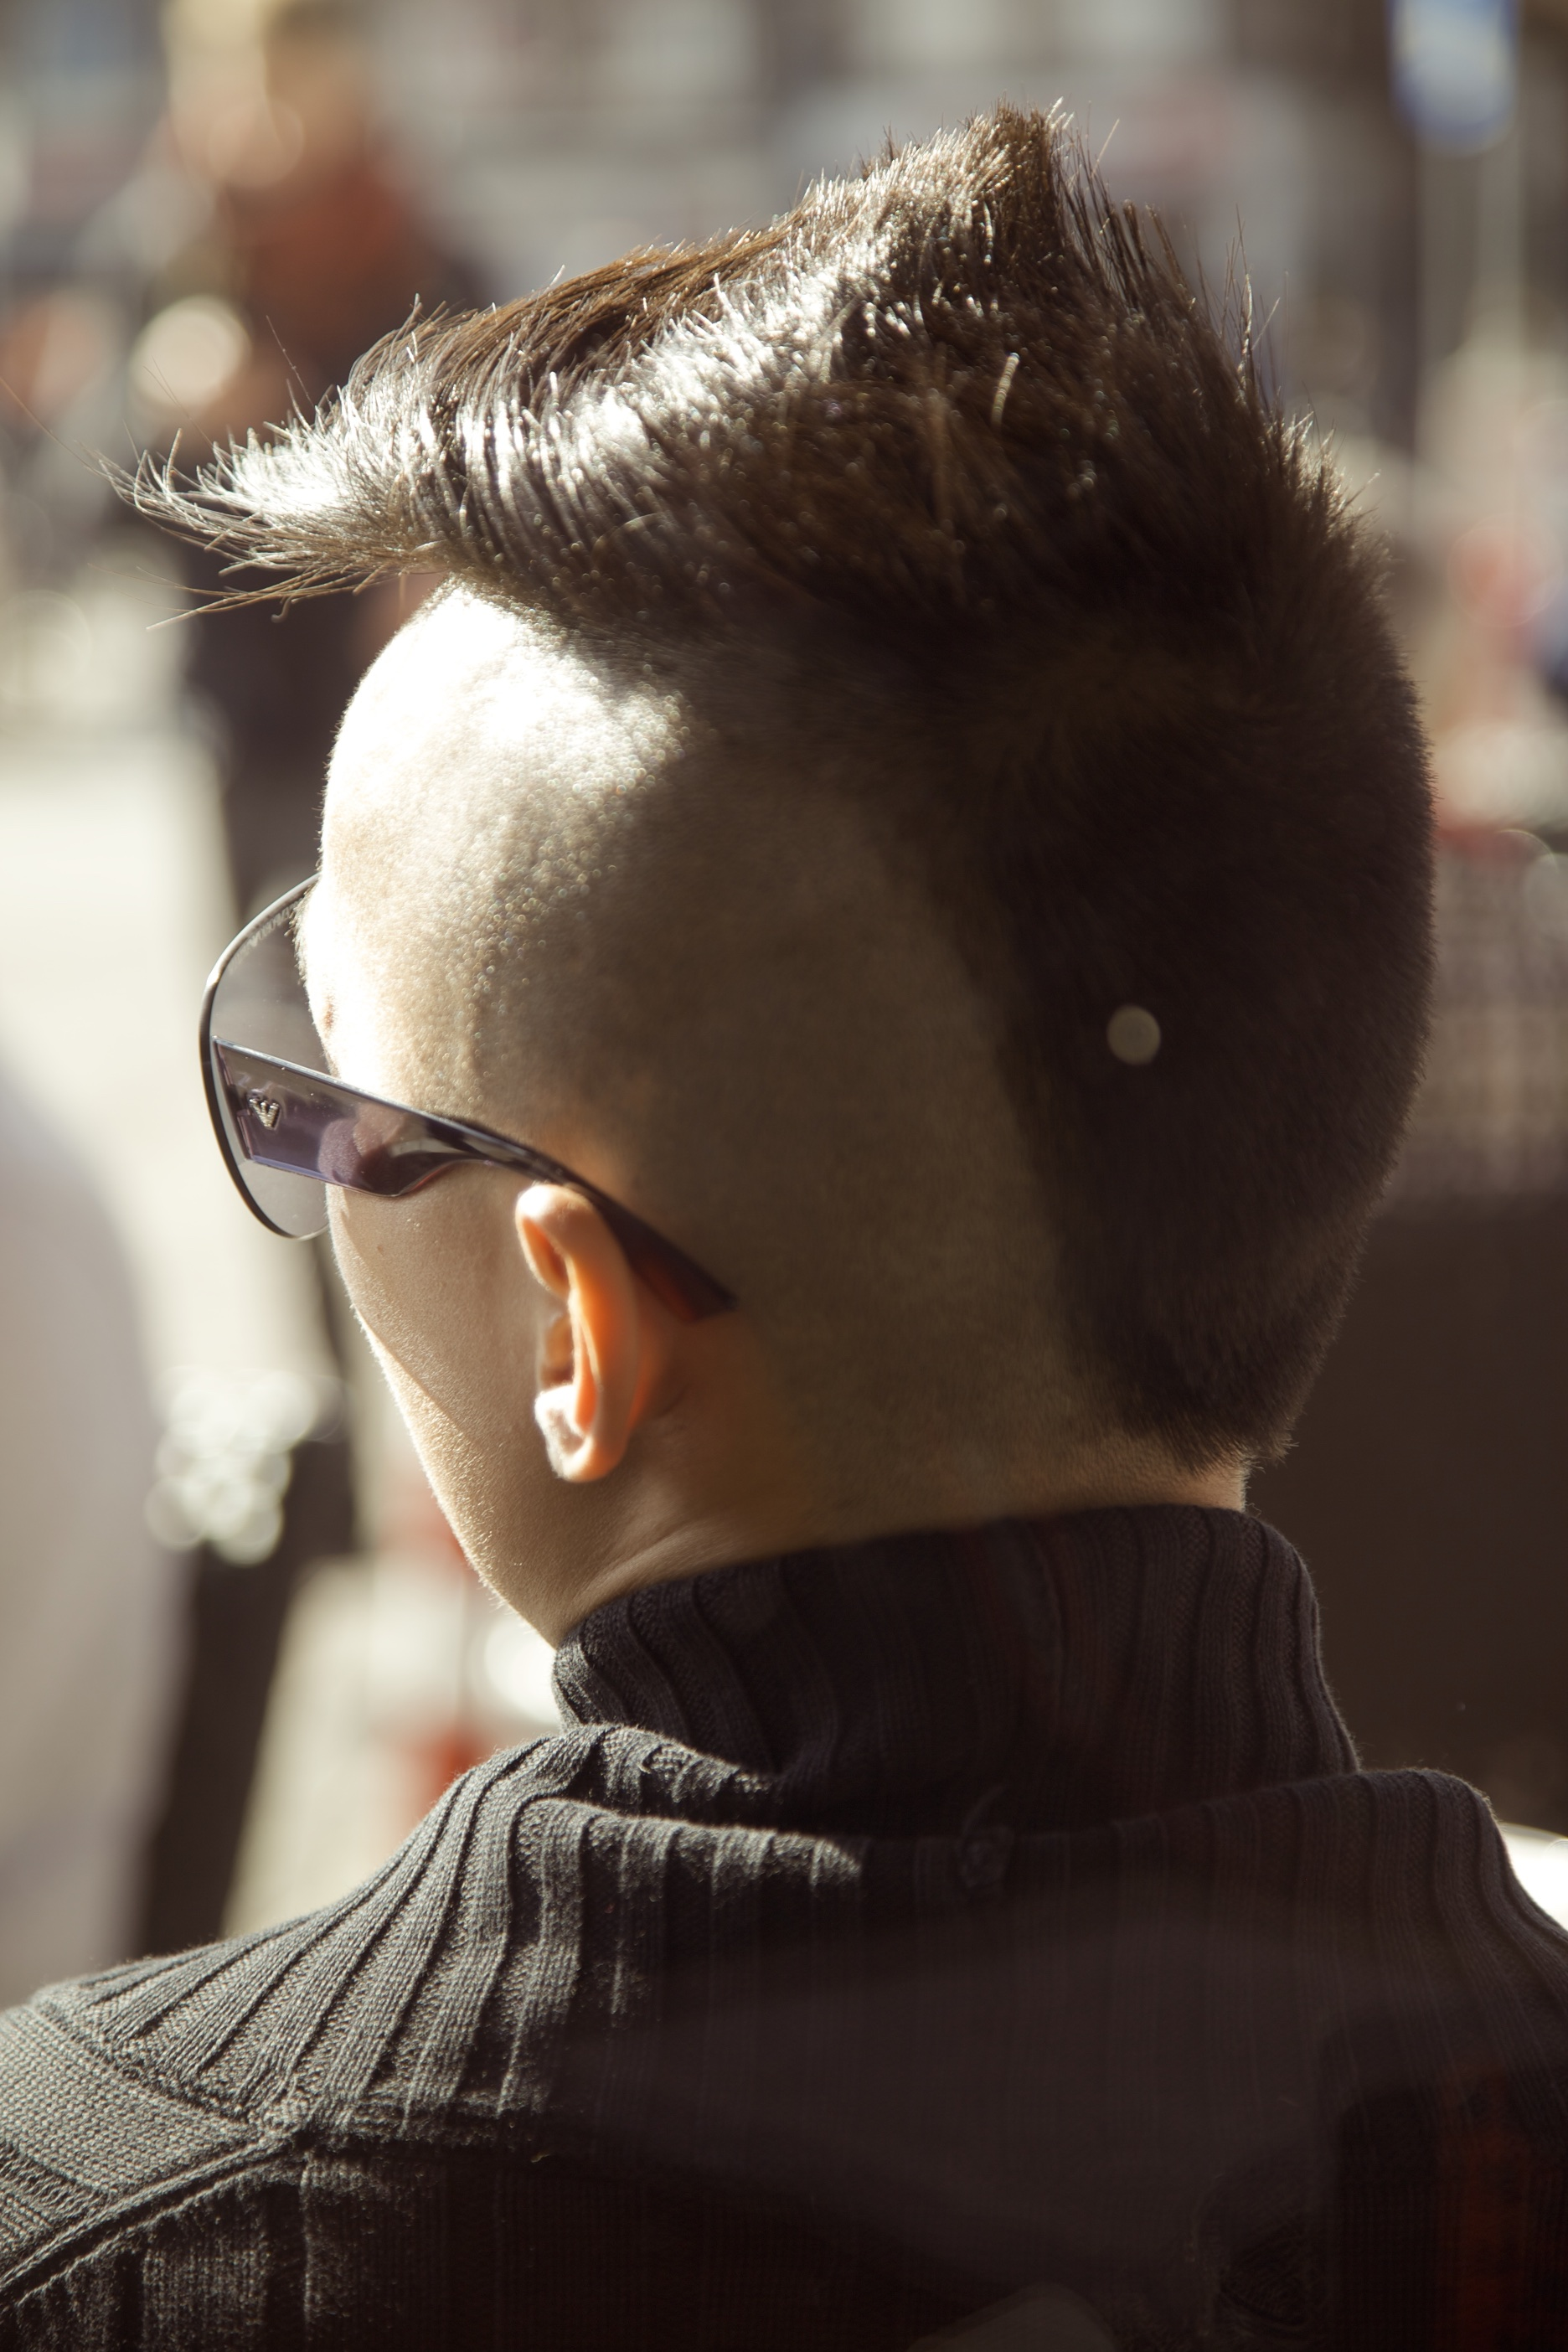 One example of a half-price haircut.